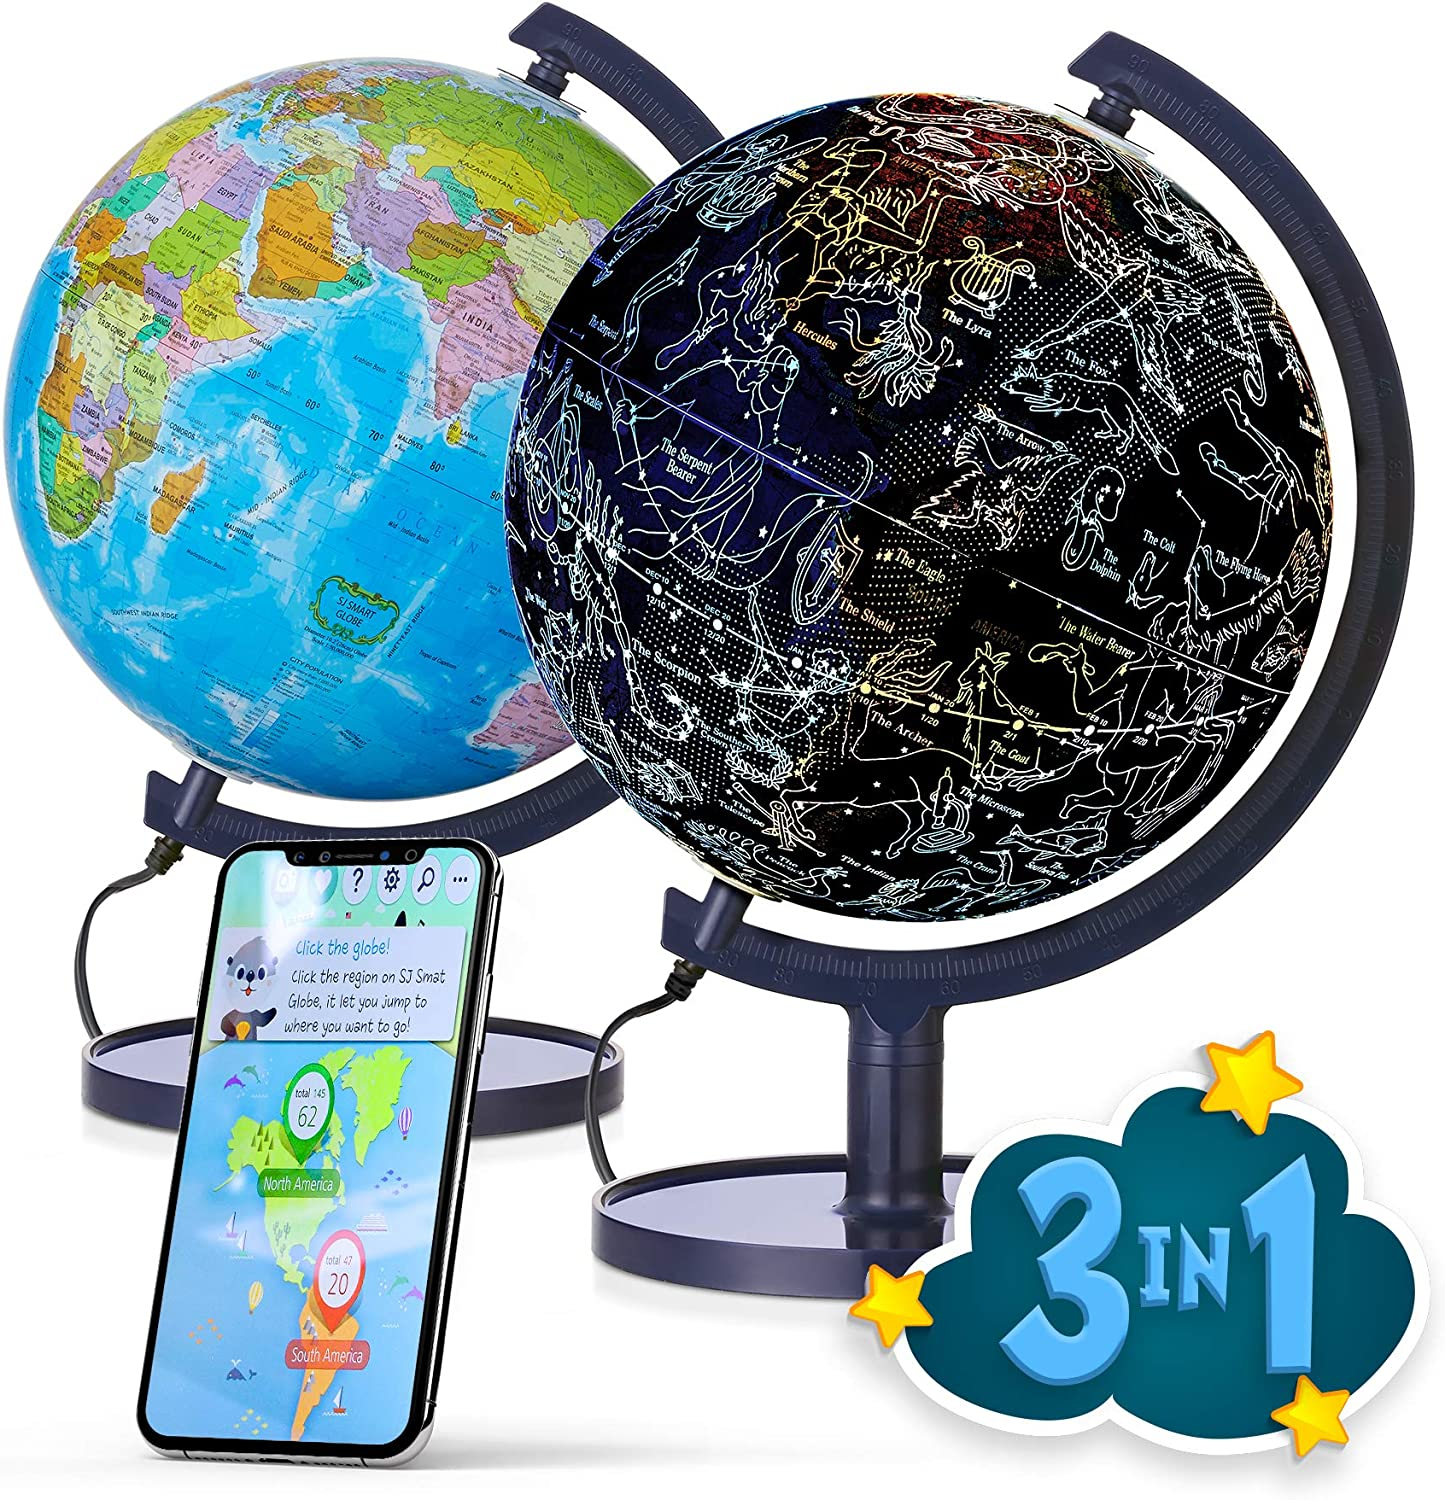 "SJ Smart Globe with Interactive APP & LED Illuminated Constellations at Night, DIY, Easy to Assemble, Educational Content for Kids, USB Cord Included, US-Patented STEM Toy, 10"" World Globe"